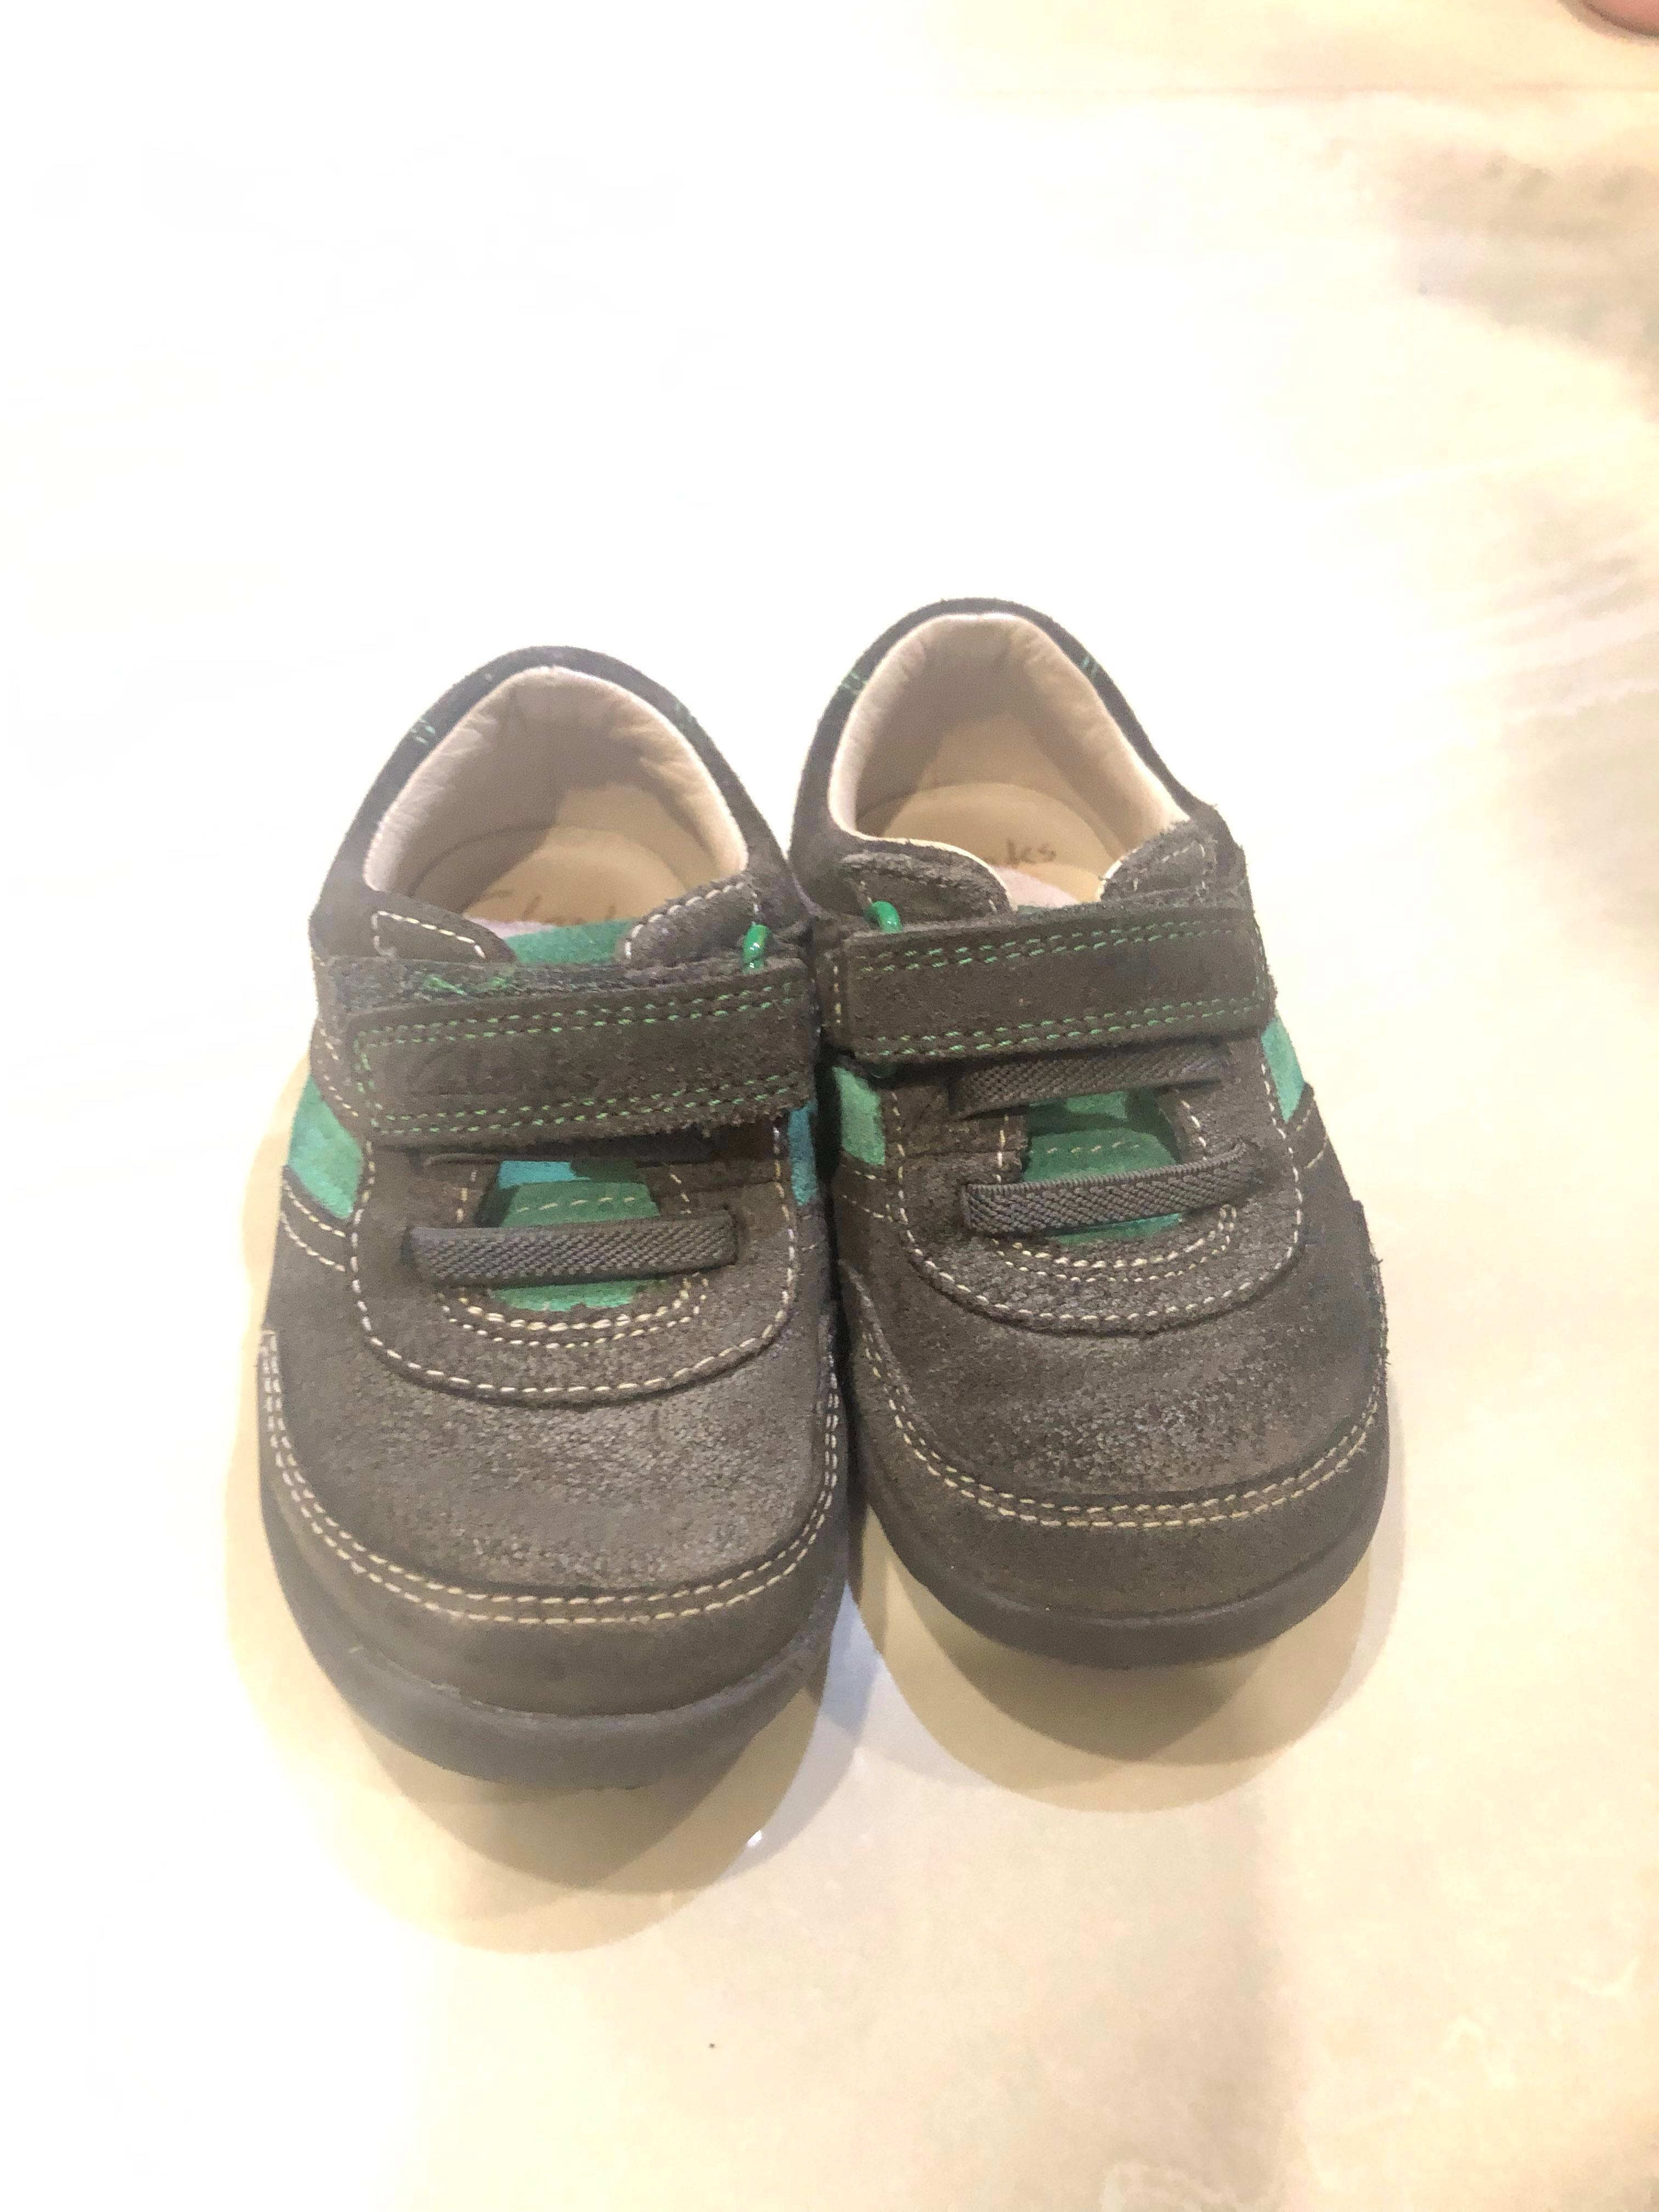 d5273c9bb Children Shoes Clarks , Babies & Kids, Boys' Apparel, 1 to 3 Years on  Carousell